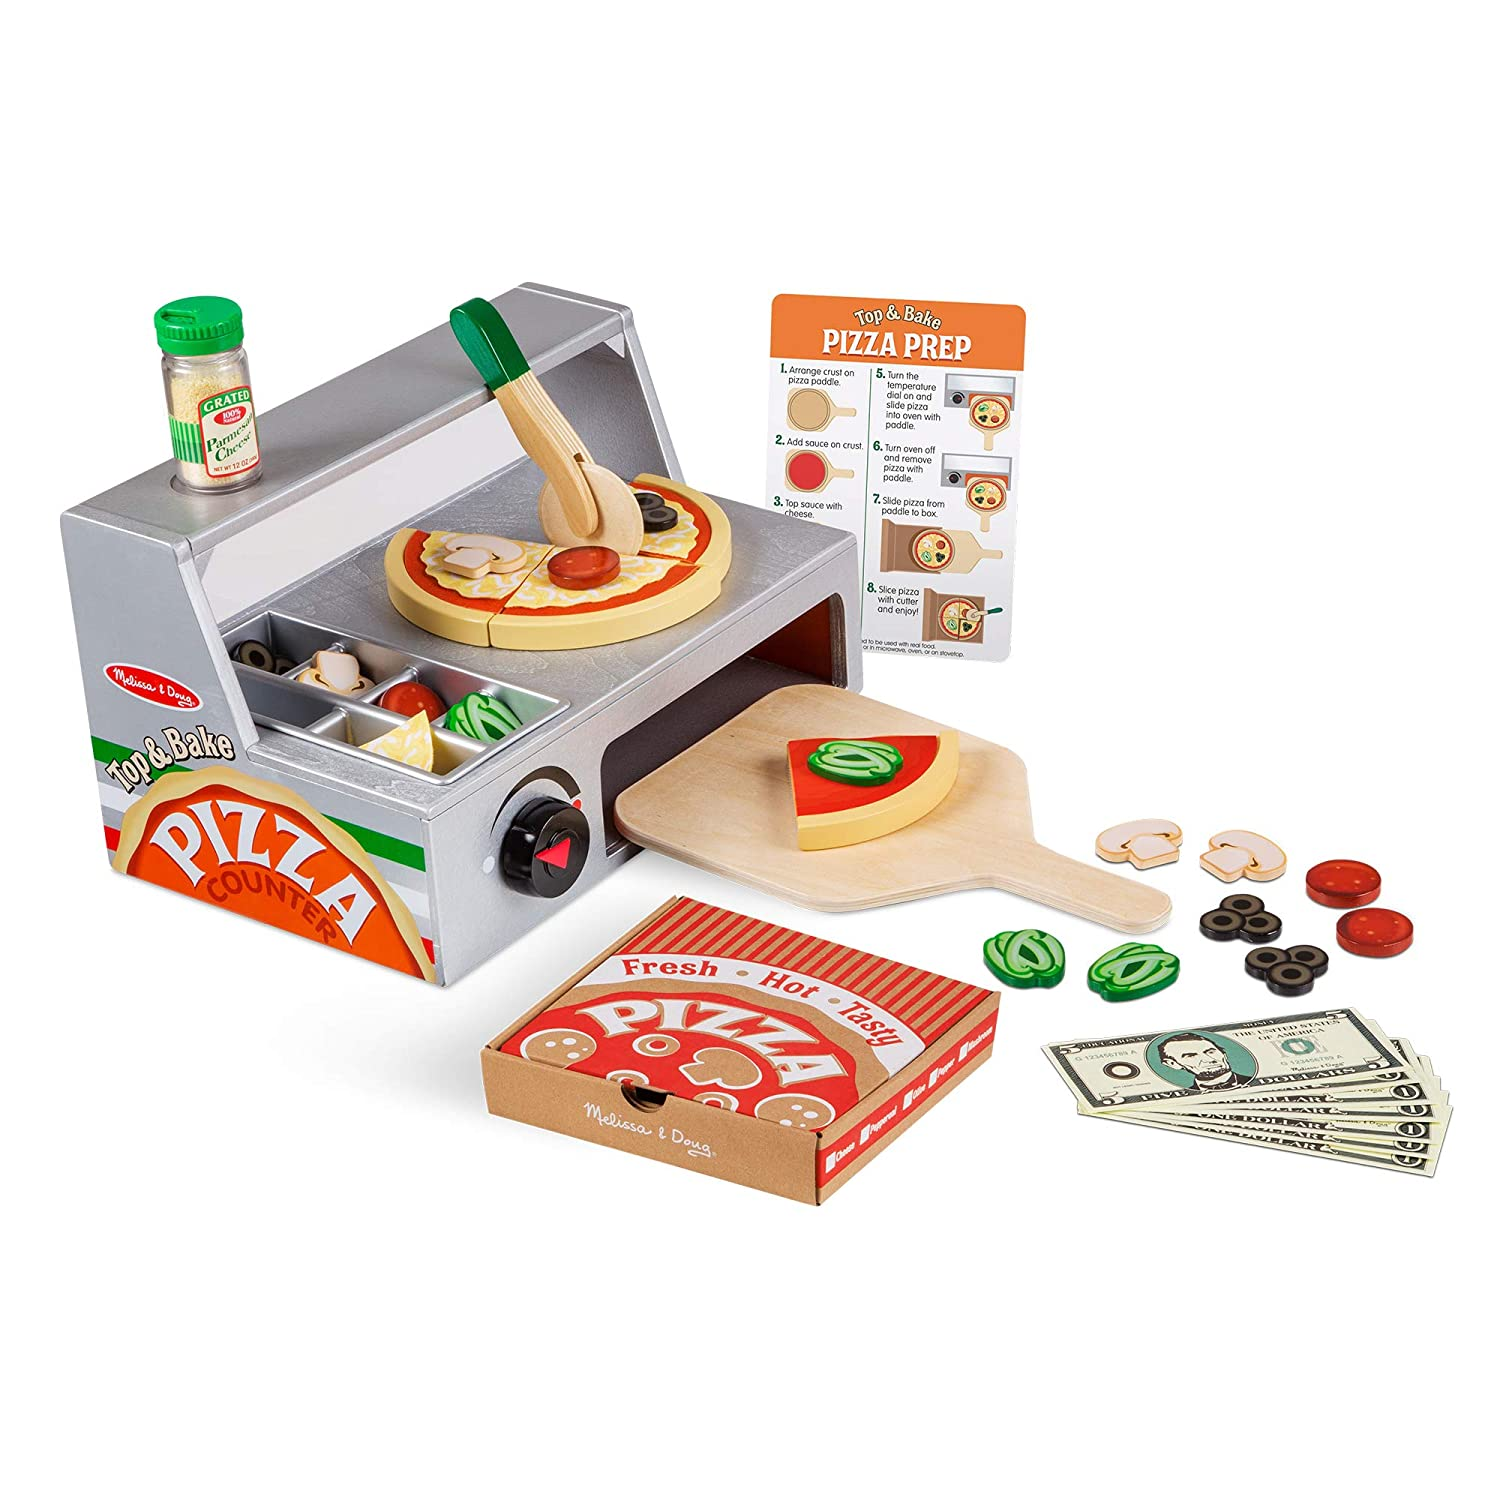 Melissa Doug Top And Bake Wooden Pizza Counter Play Food Set Pretend Play Helps Support Cognitive Development 34 Pieces 7 75 H X 9 25 W X